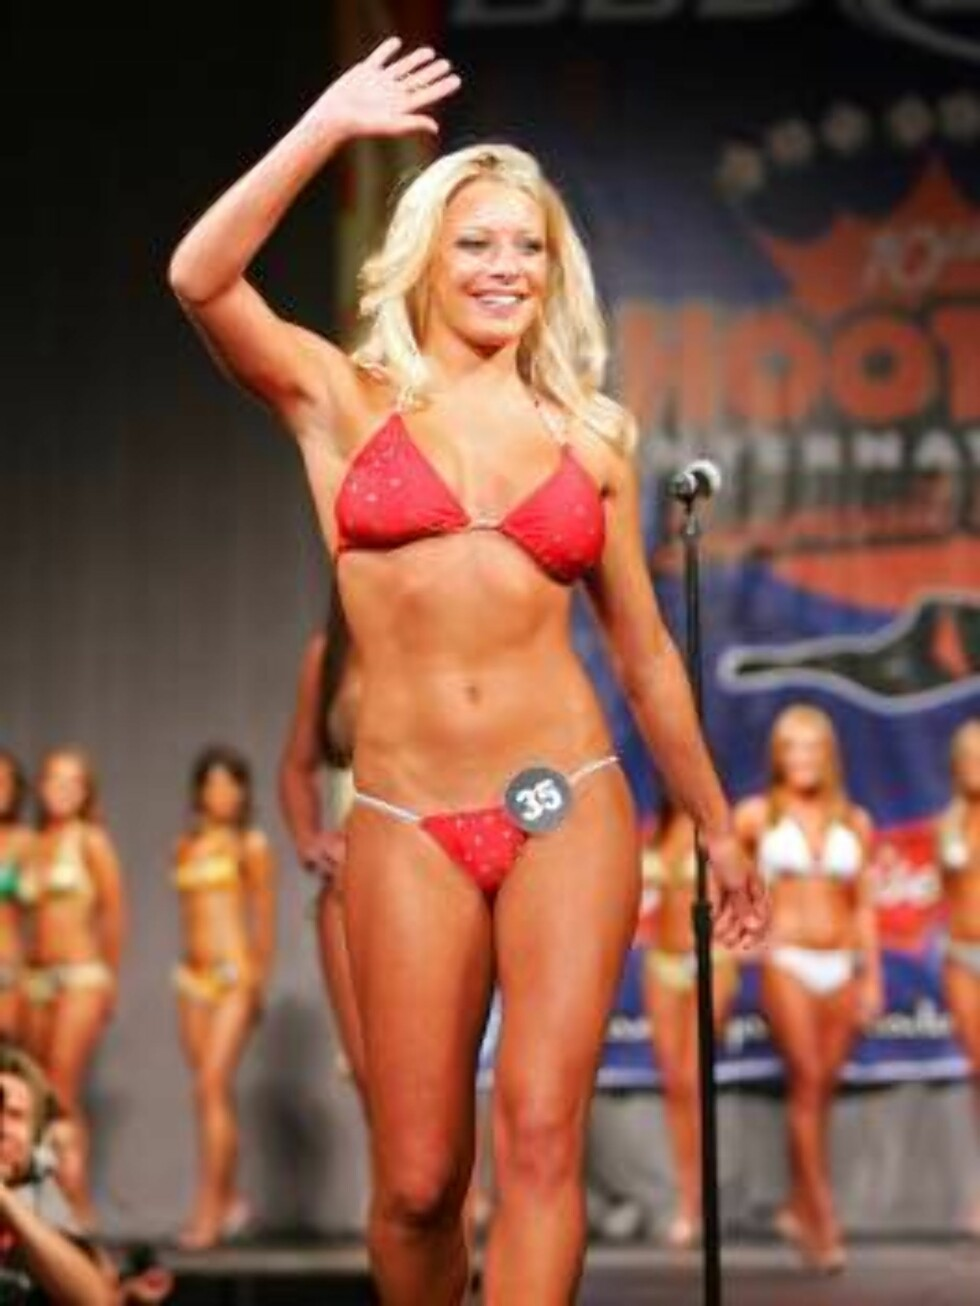 <strong>LAS VEGAS - JULY 24:</strong>  Jessica Pribanic of Ohio competes in a preliminary preview of the 10th annual Hooters International Swimsuit Pageant at the Aladdin Casino & Resort June 24, 2006 in Las Vegas, Nevada. Over 120 Hooters girls who work in one of the com Foto: All Over Press